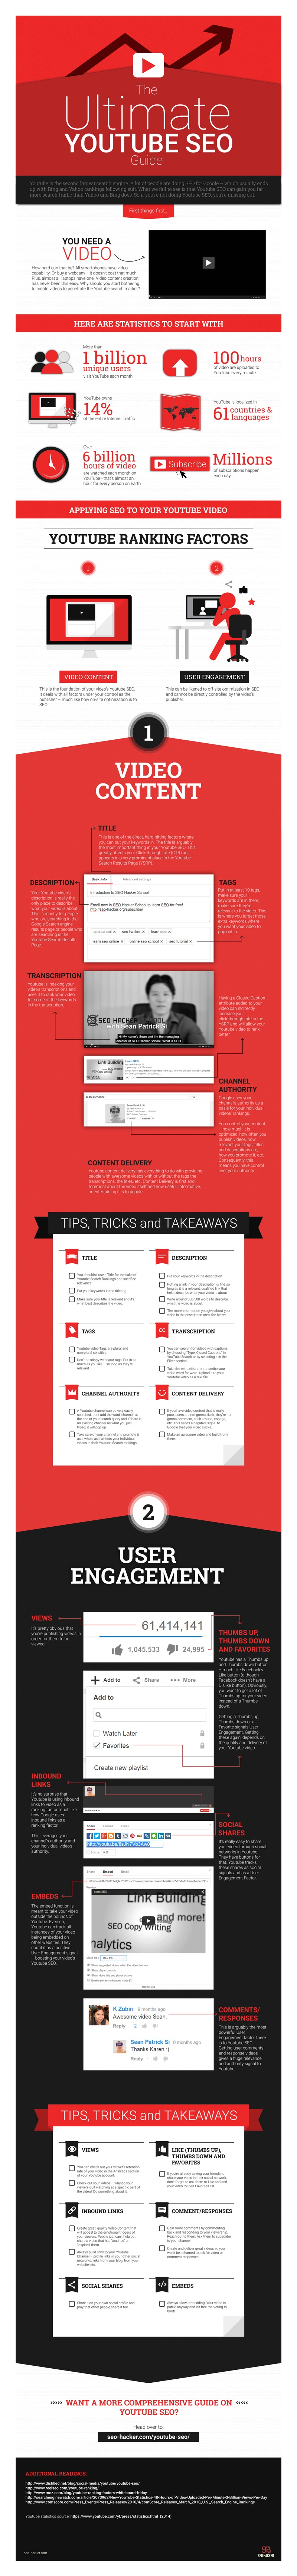 The Ultimate Youtube SEO Guide - #infographic